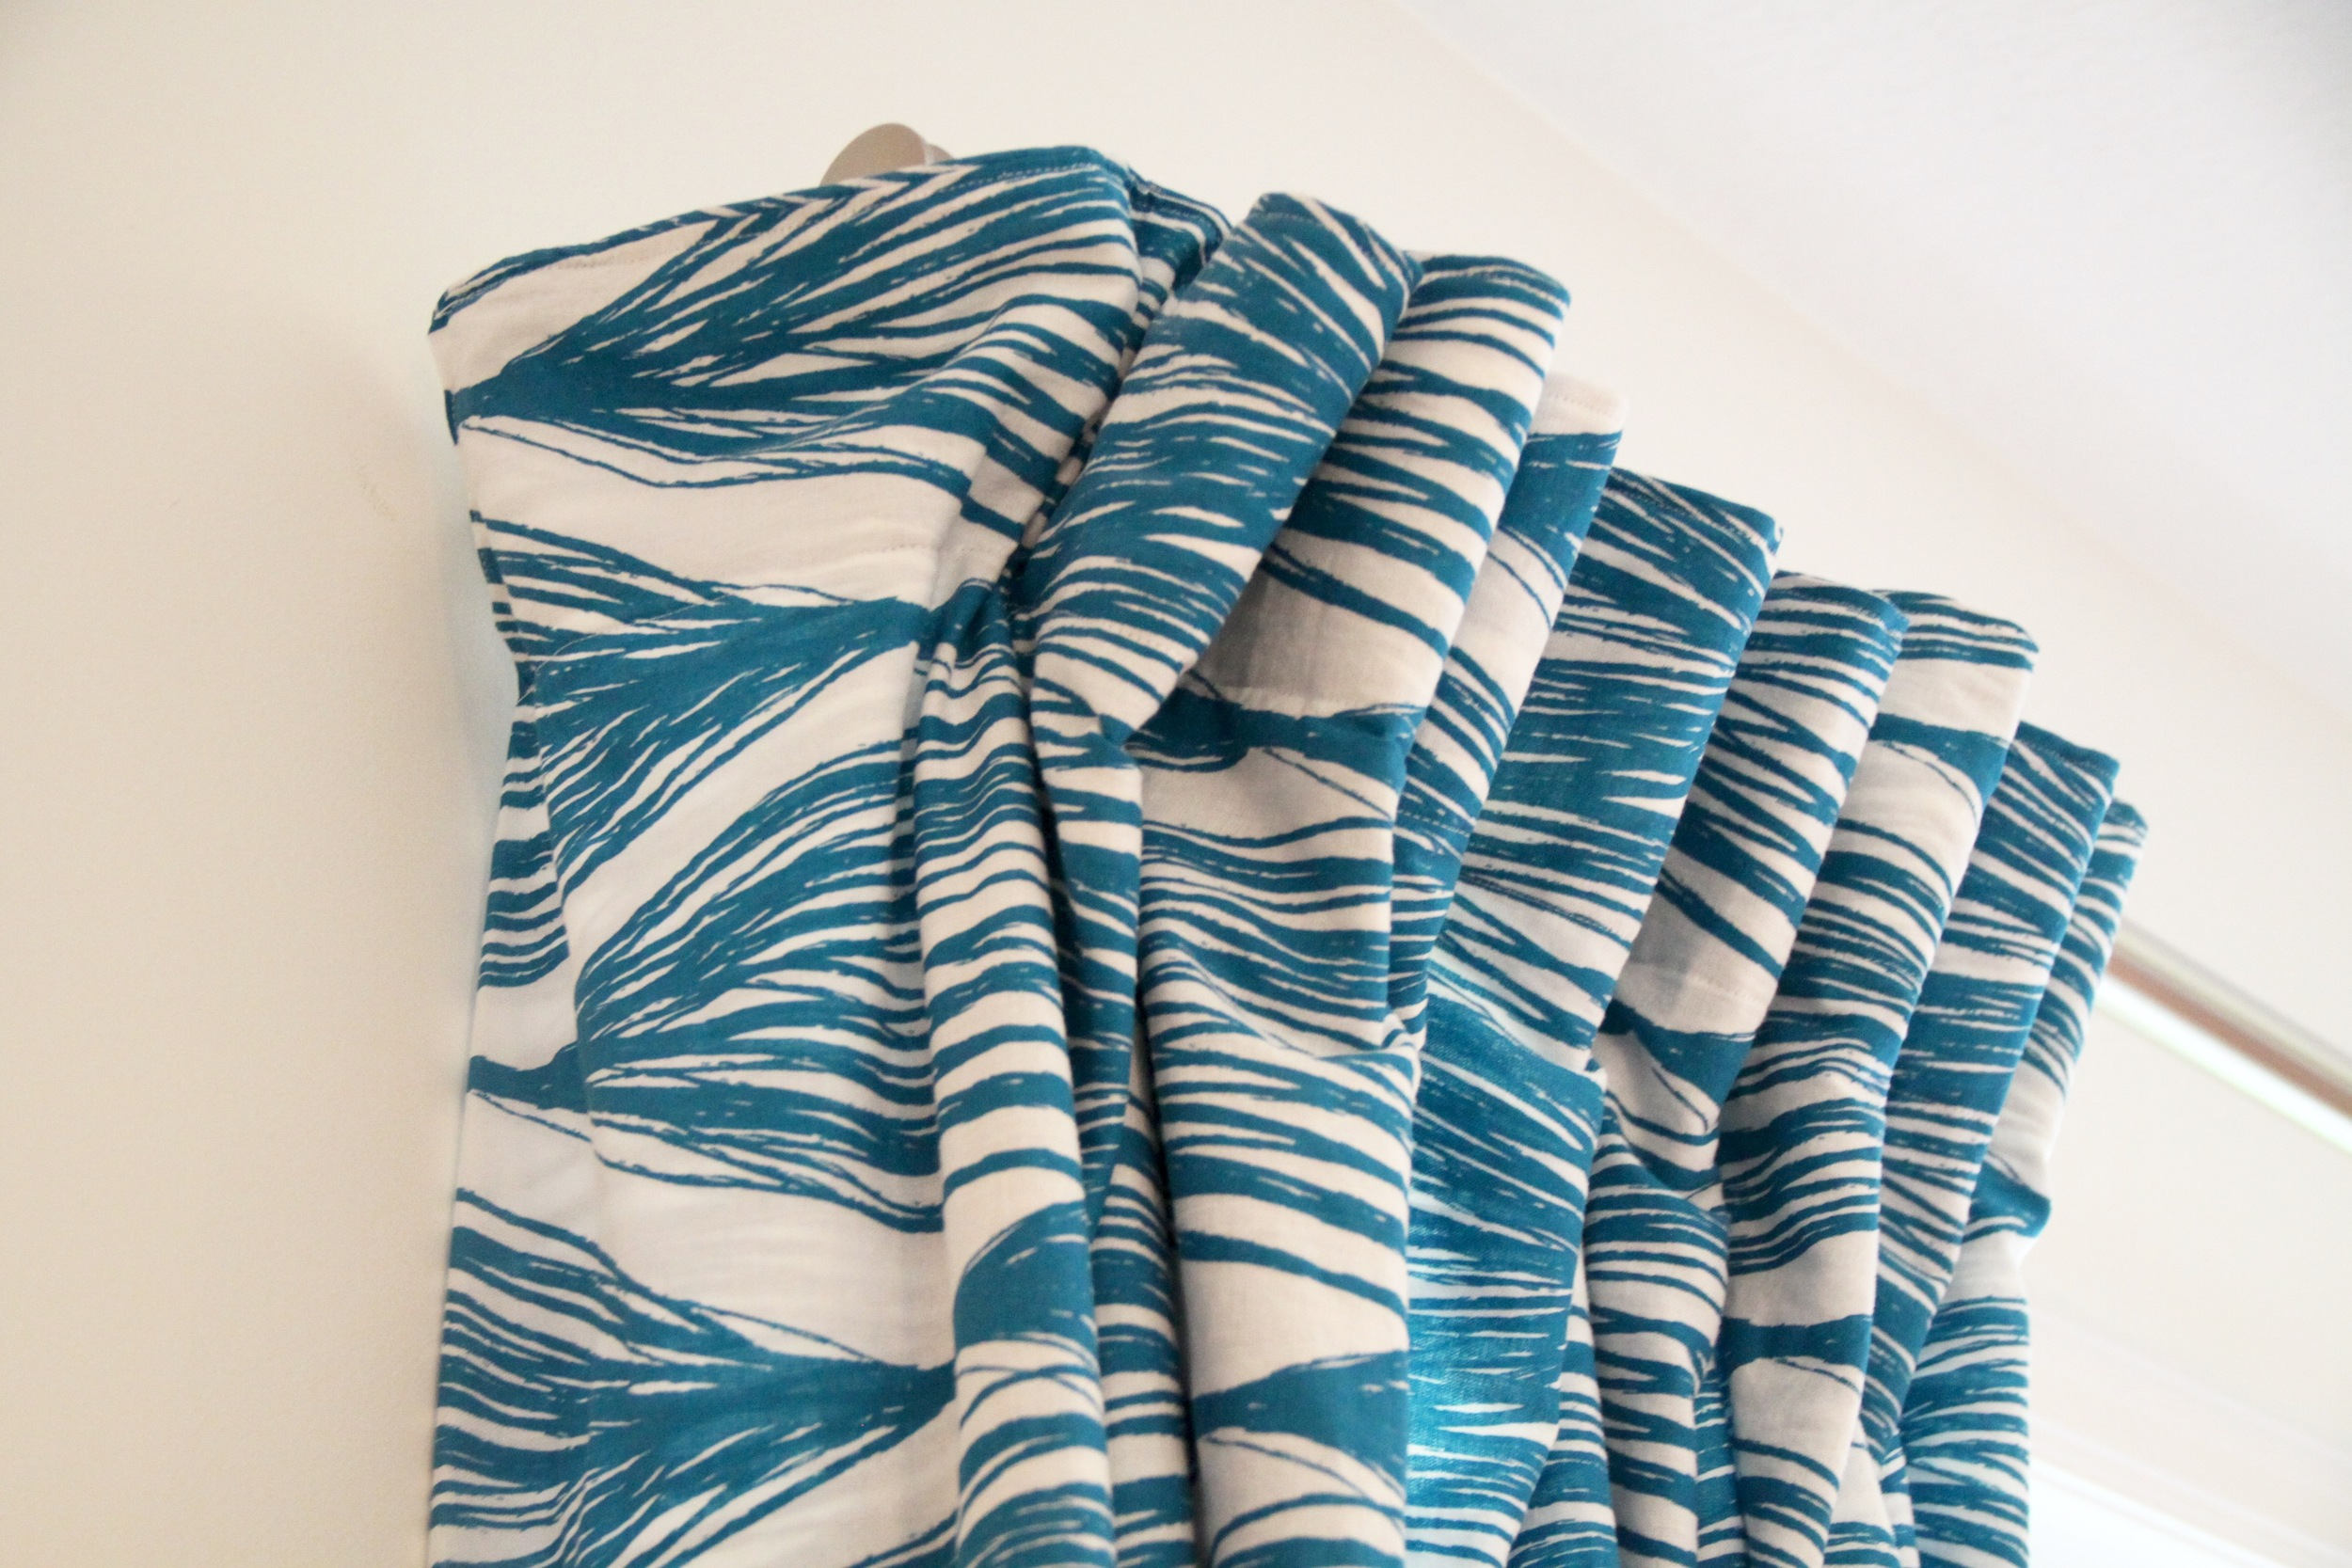 DIY Pinch-Pleat Curtains Return to the Wall